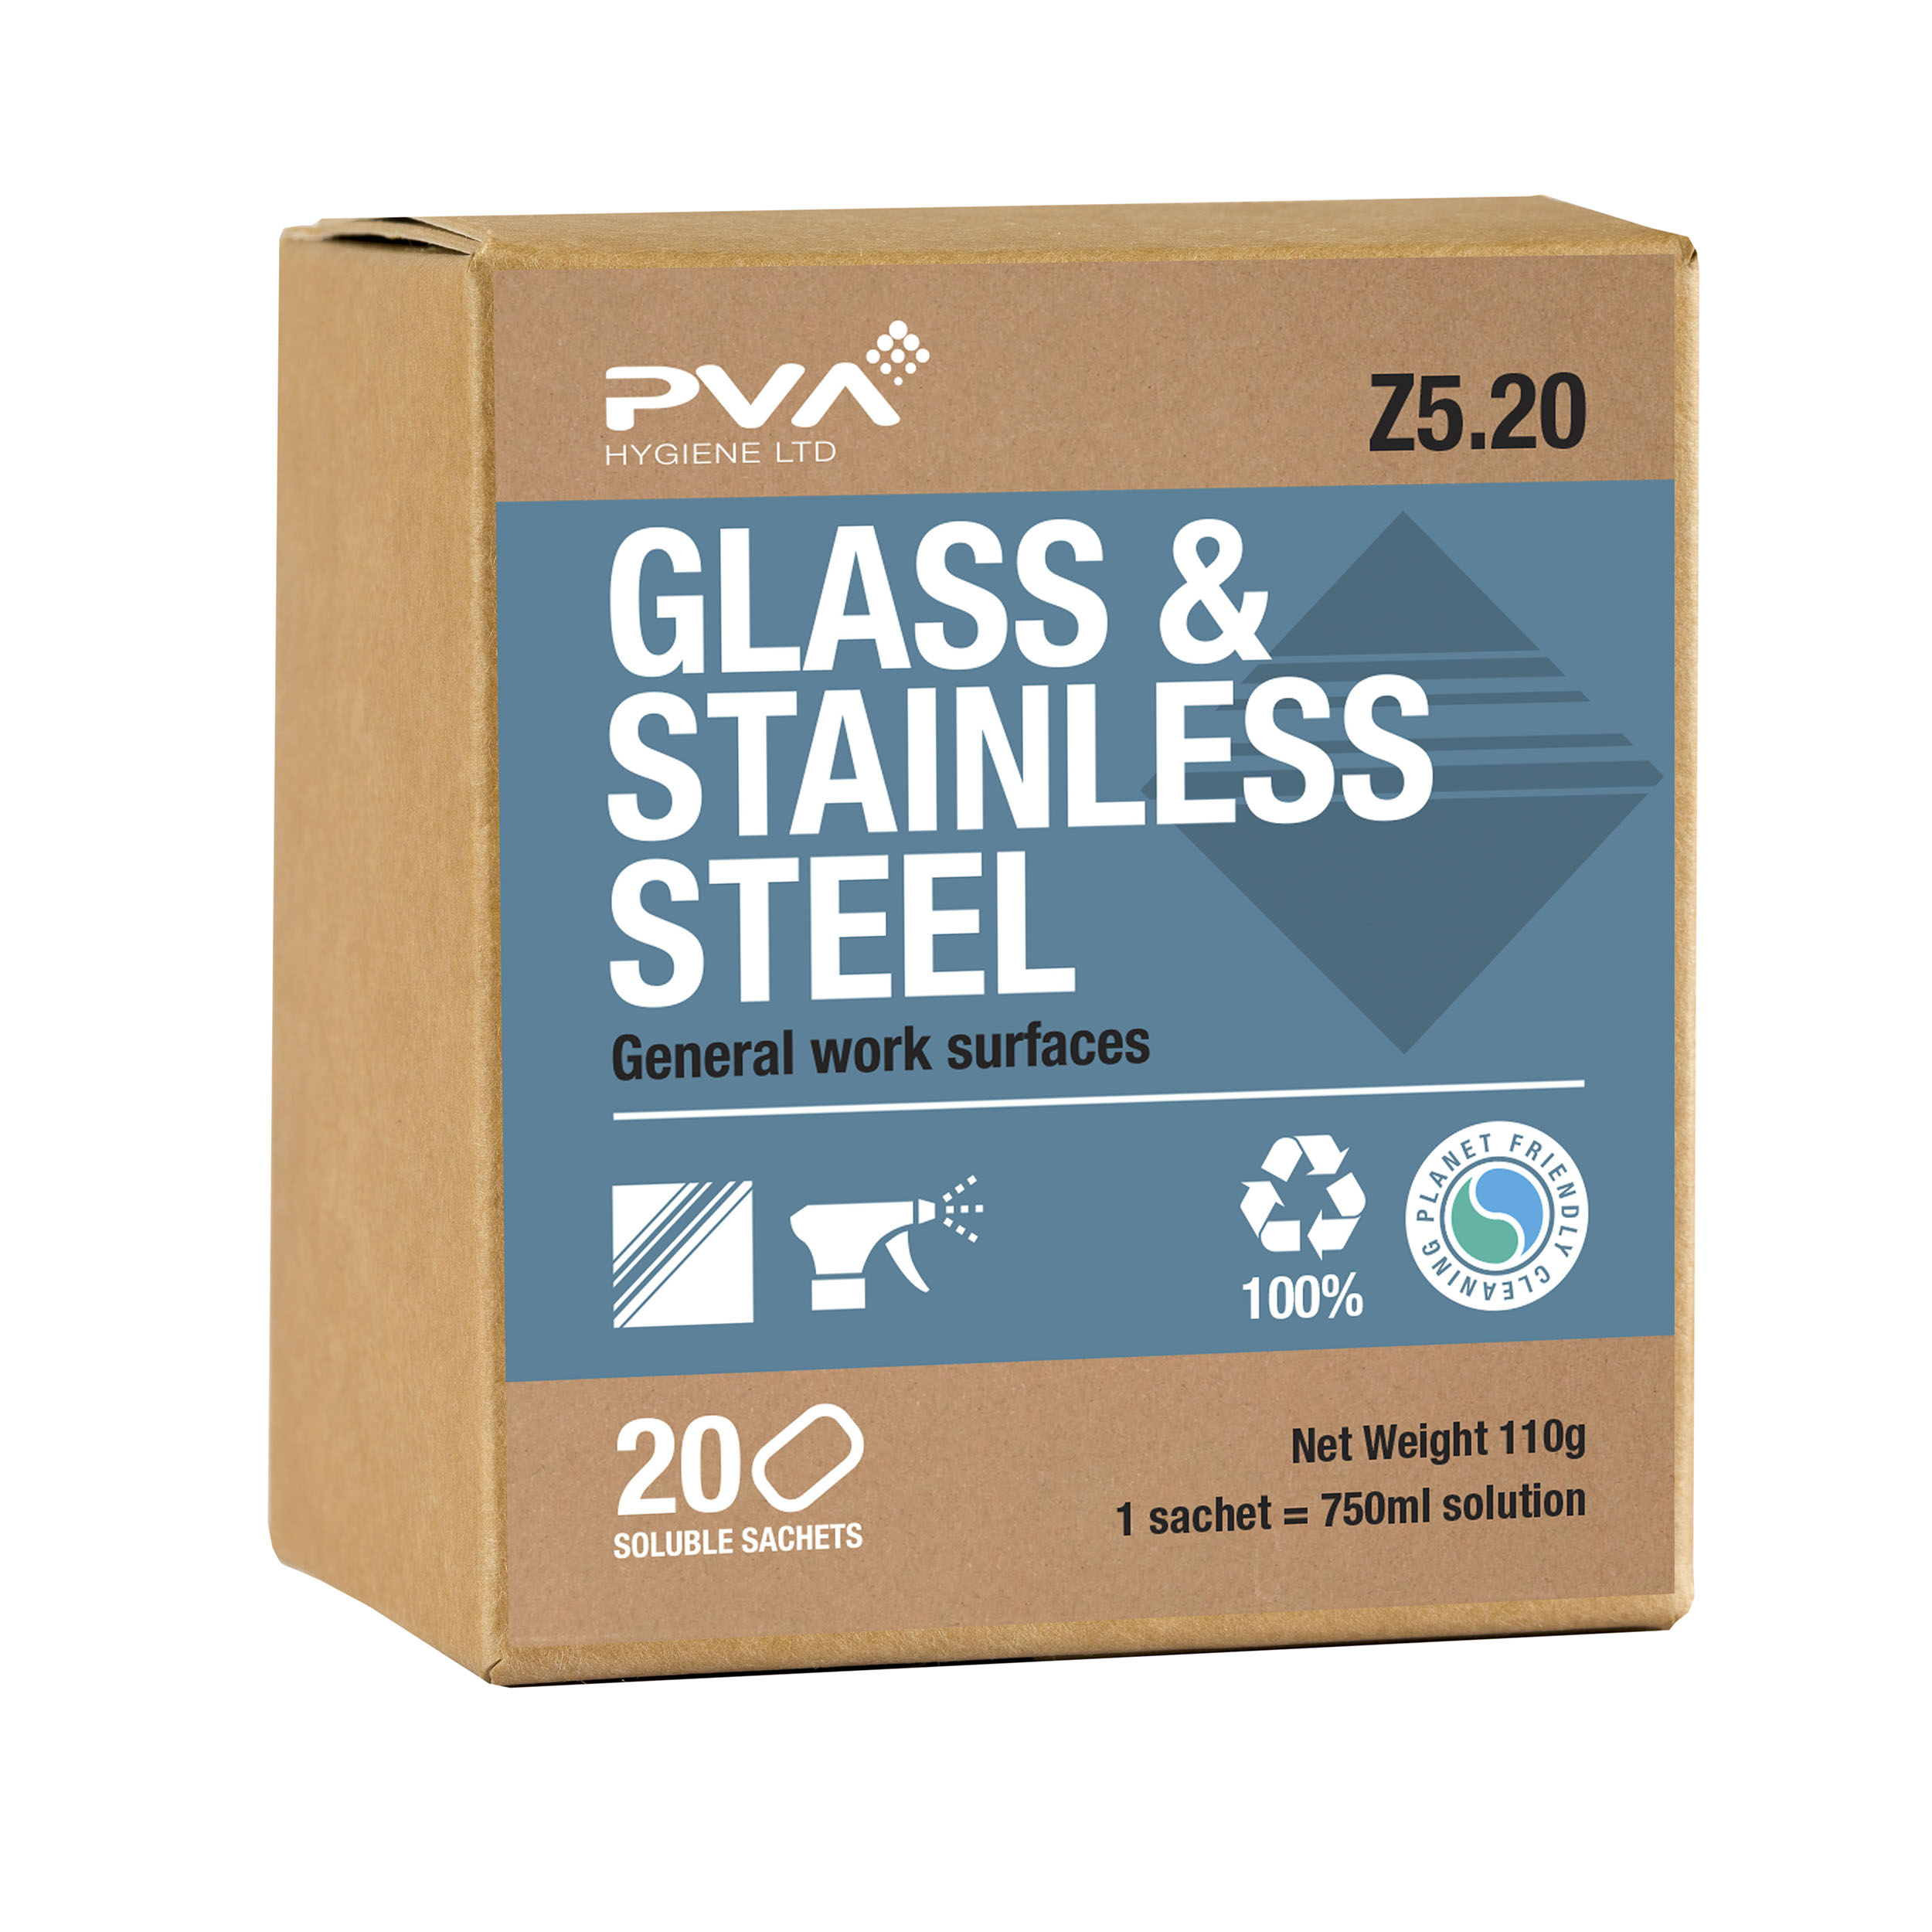 Cleaning Chemicals PVA Glass & Stainless Steel Cleaner Sachets Ref 4018018 [Pack 20]